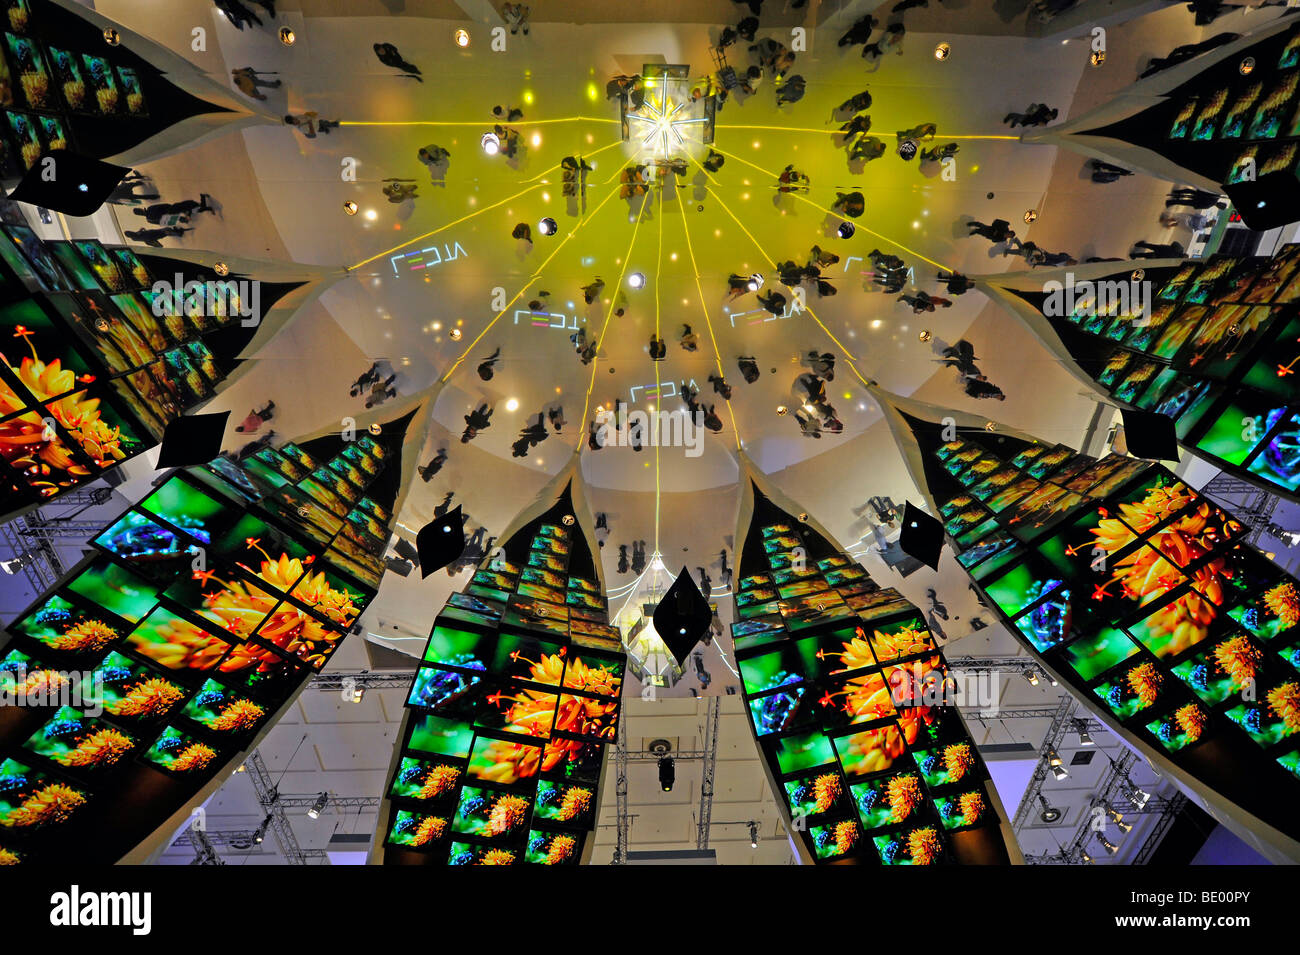 Light show in the exhibition hall of Samsung at the IFA Internationale Funkaustellung consumer electronics fair - Stock Image